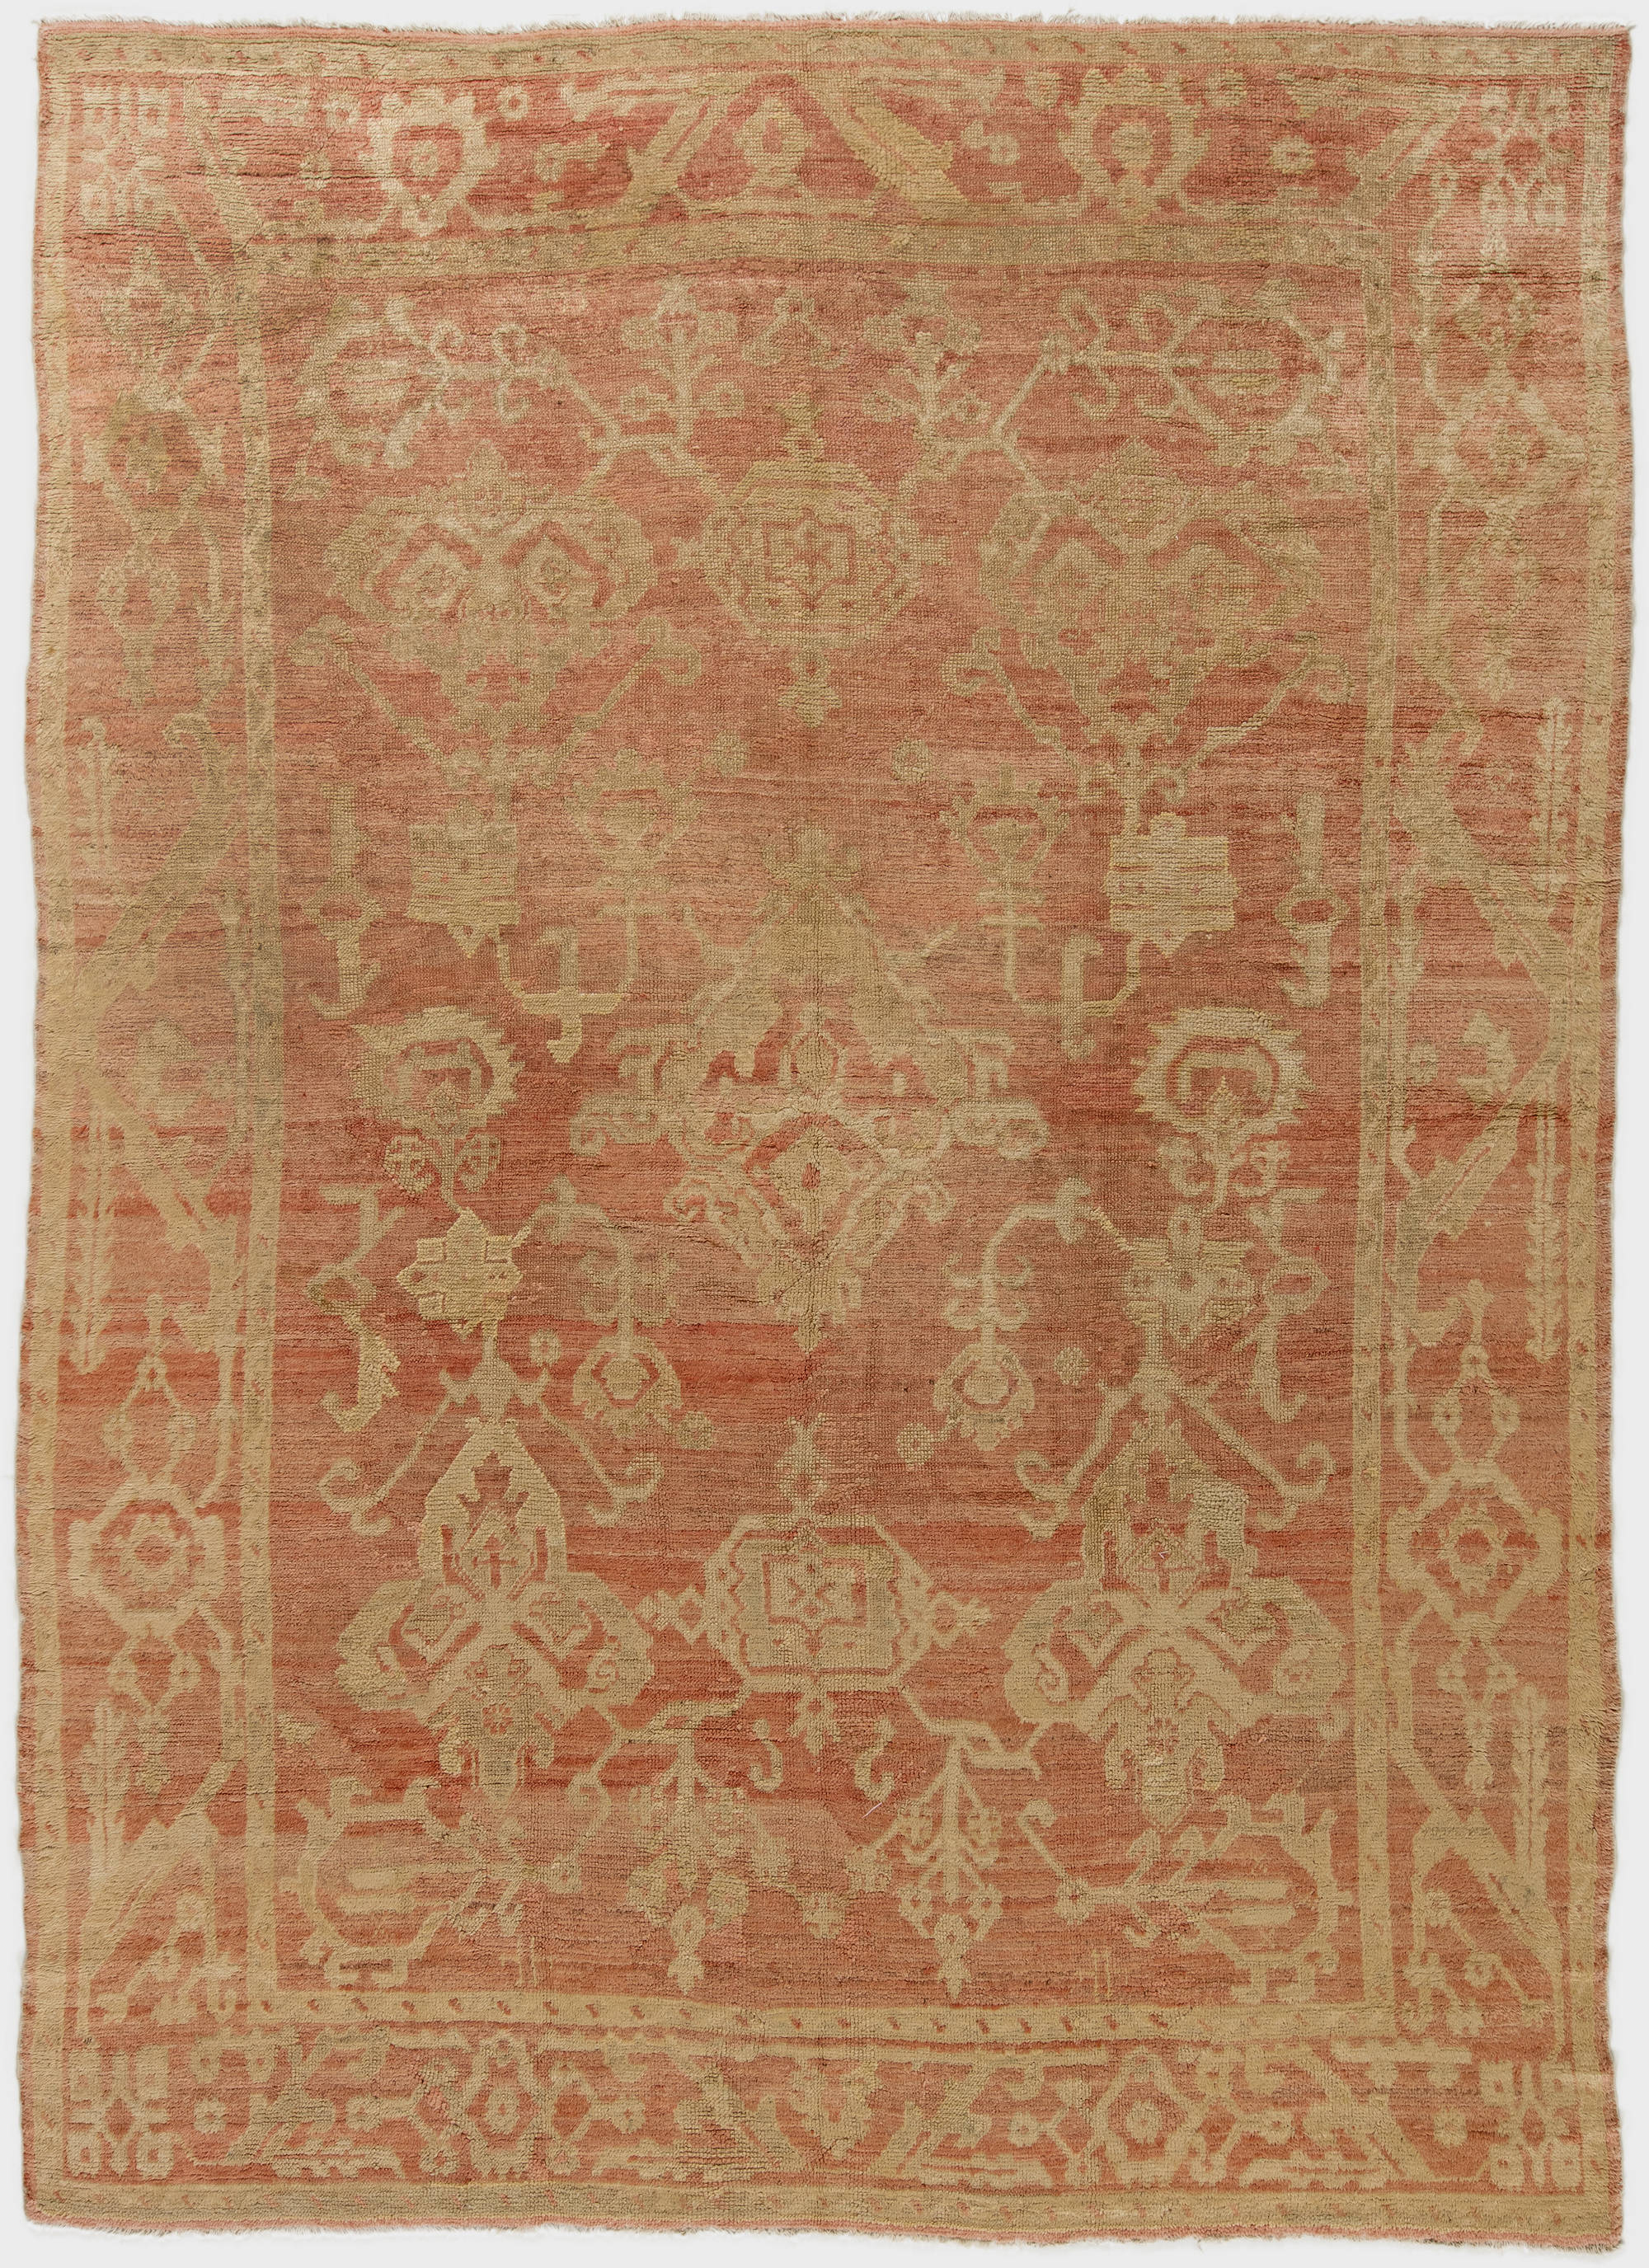 Antique Turkish Oushak Rug Bb6258 By Dlb